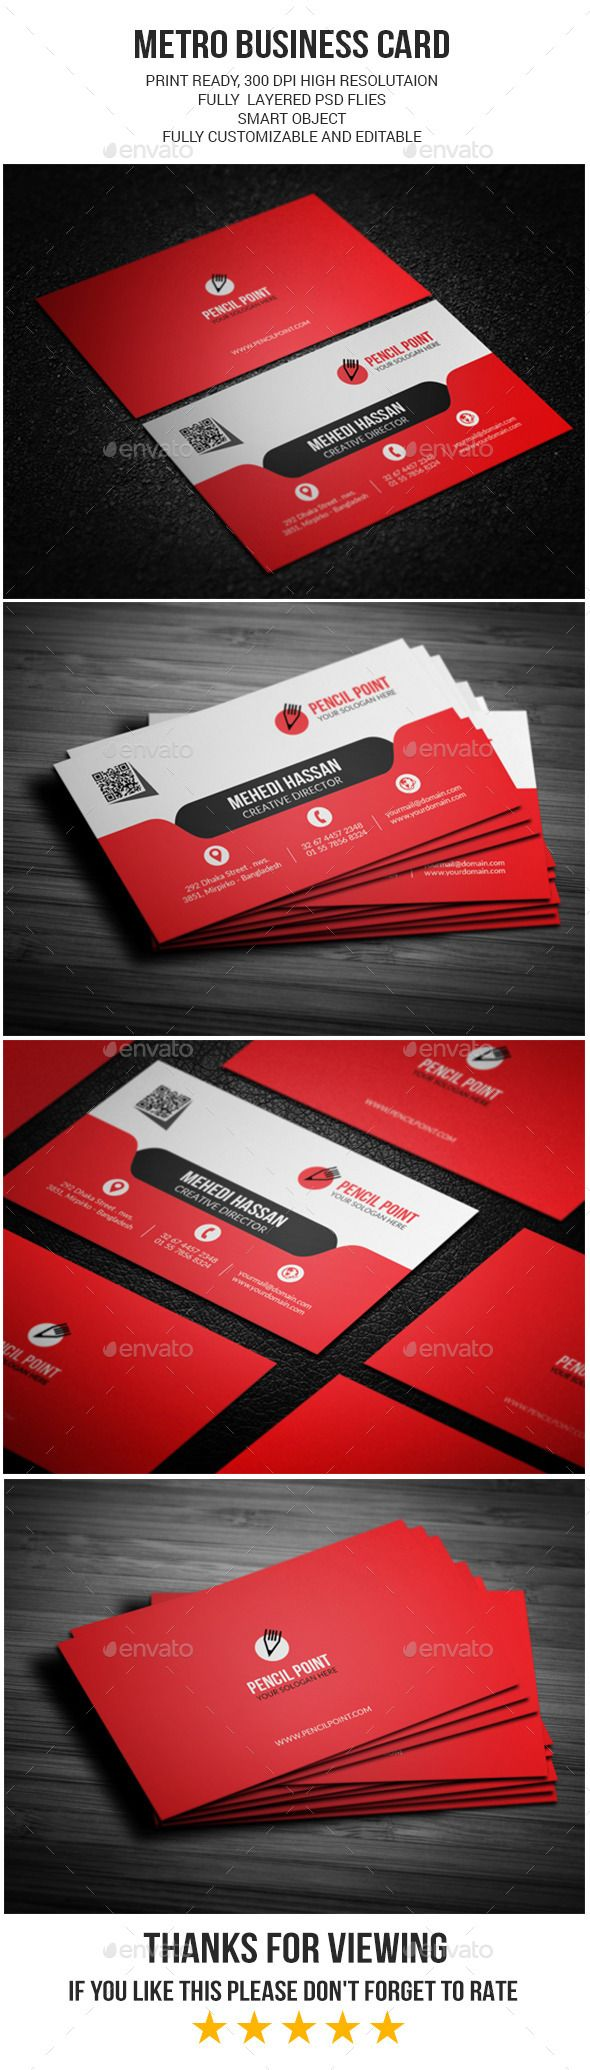 Metro Business Card | Business cards, Photography business cards and ...